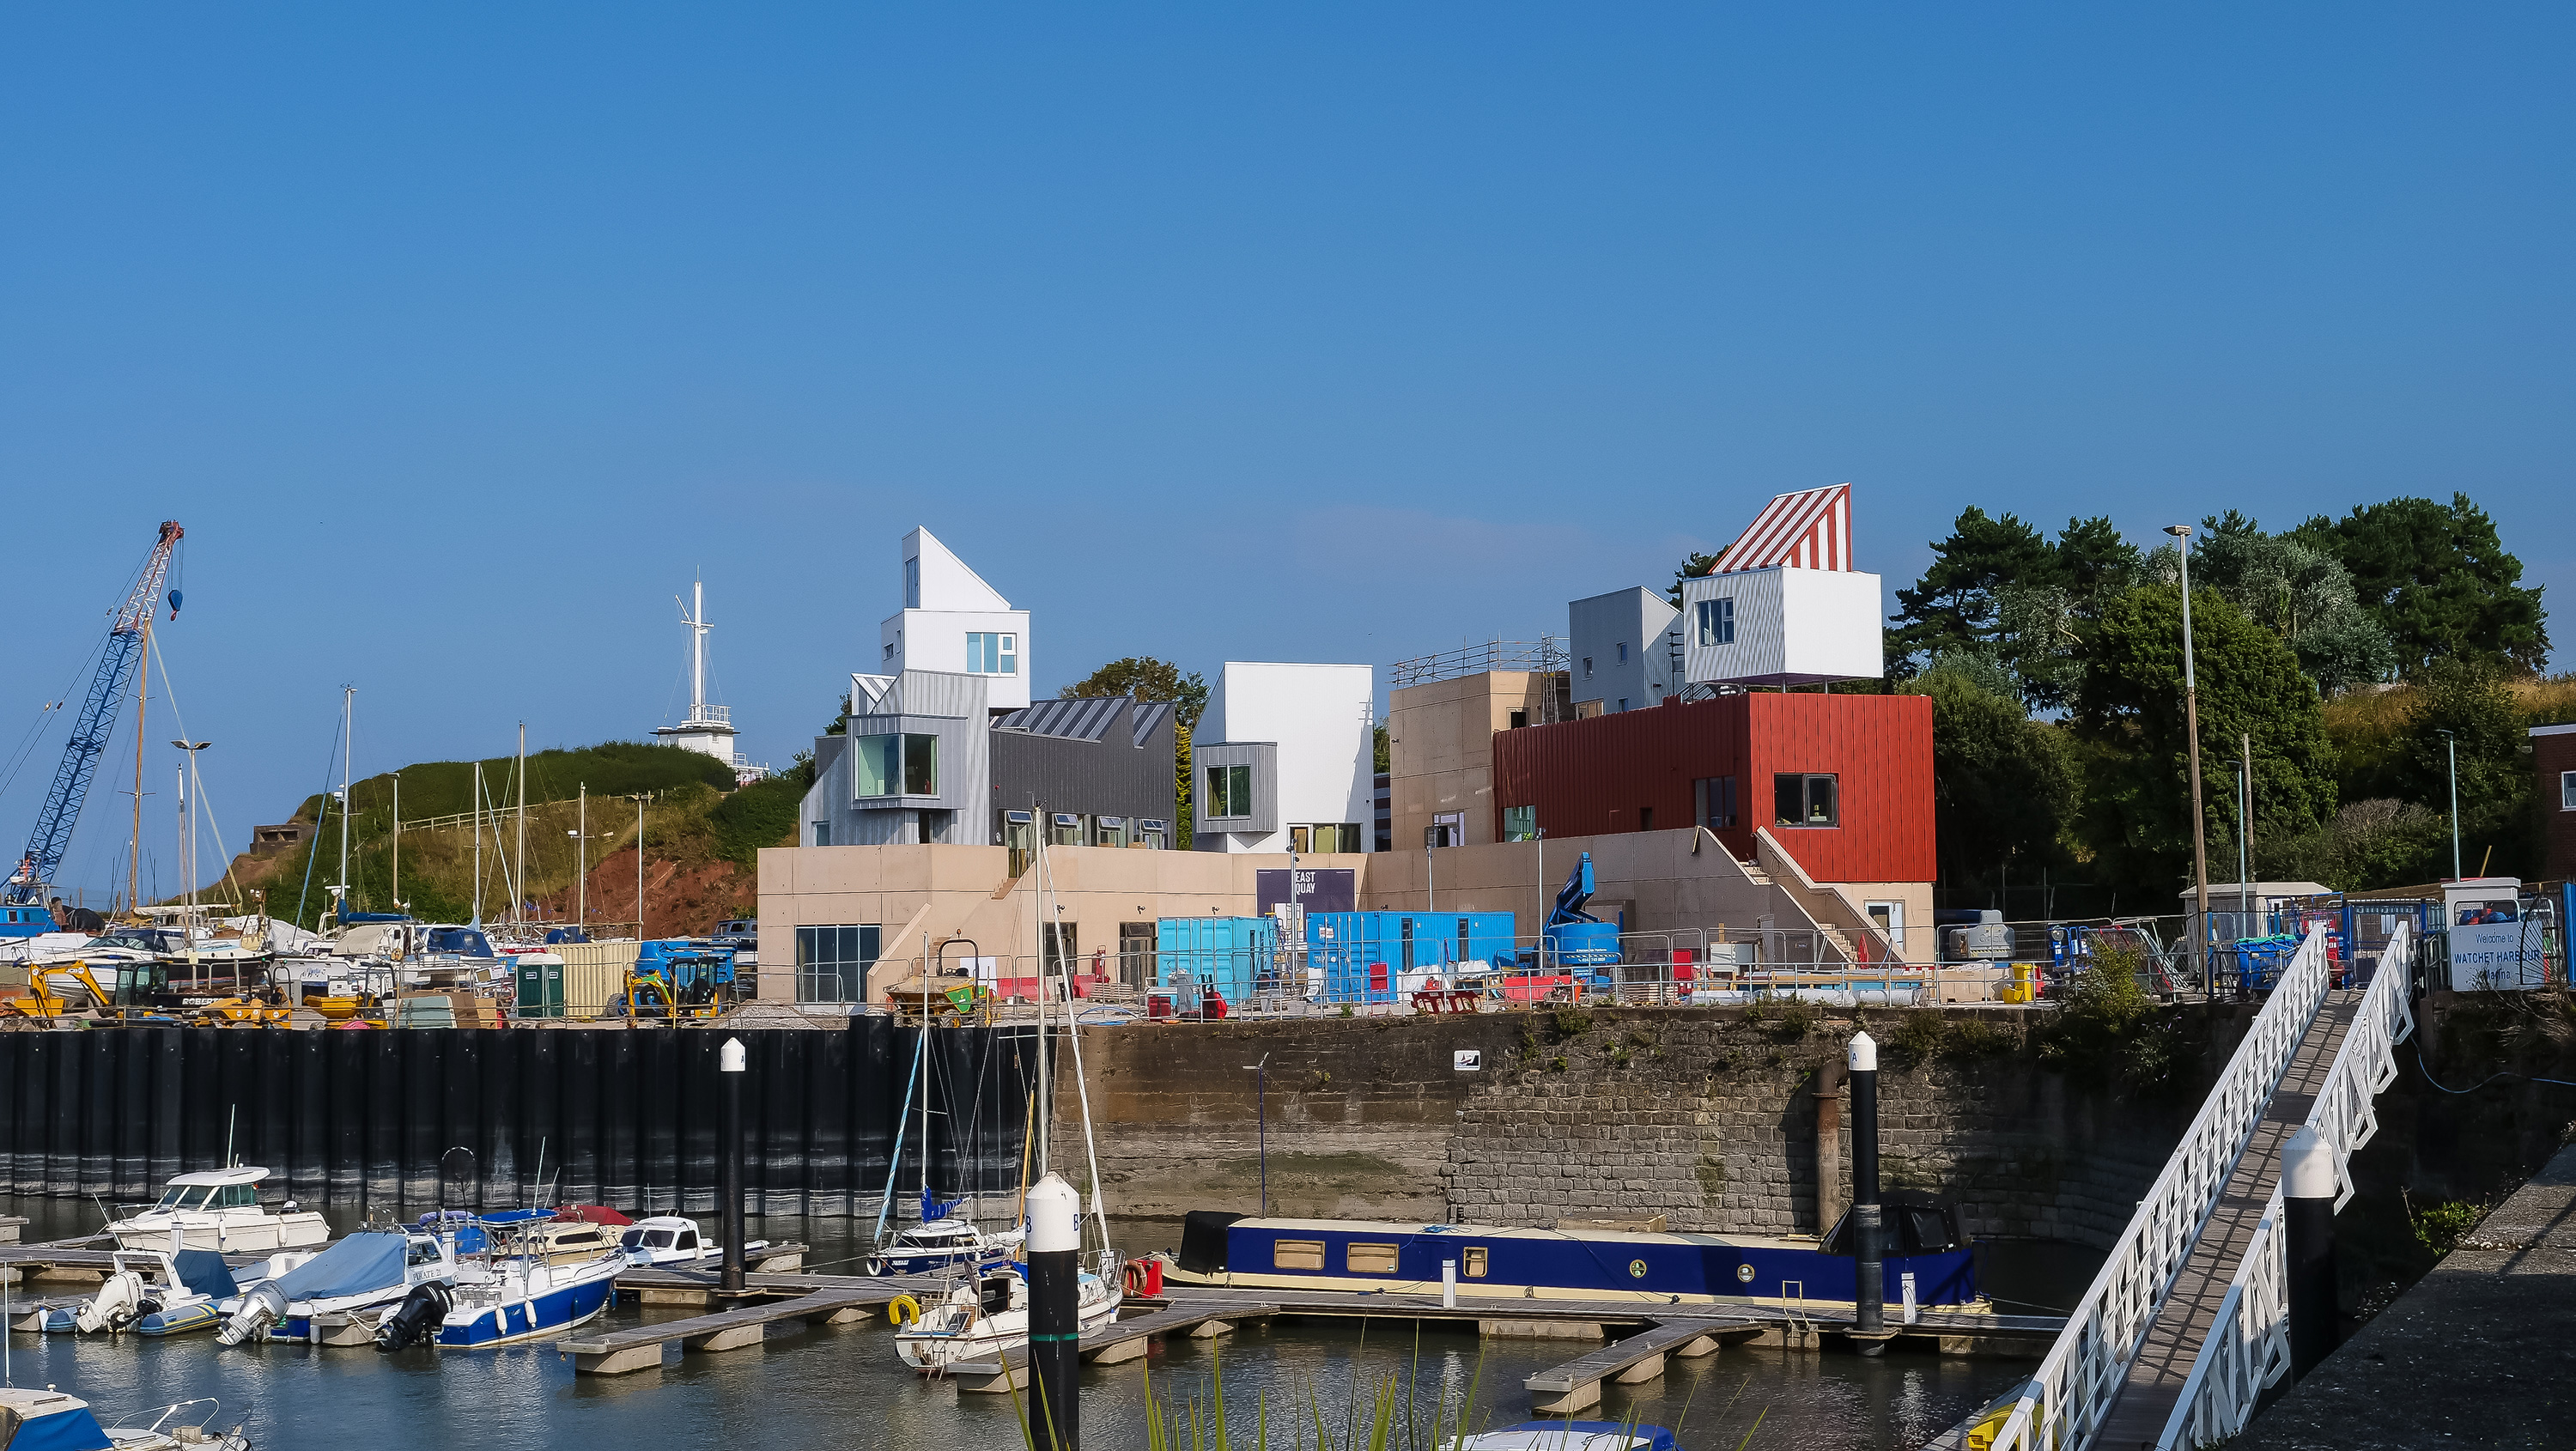 A Image of the East Quay Building.